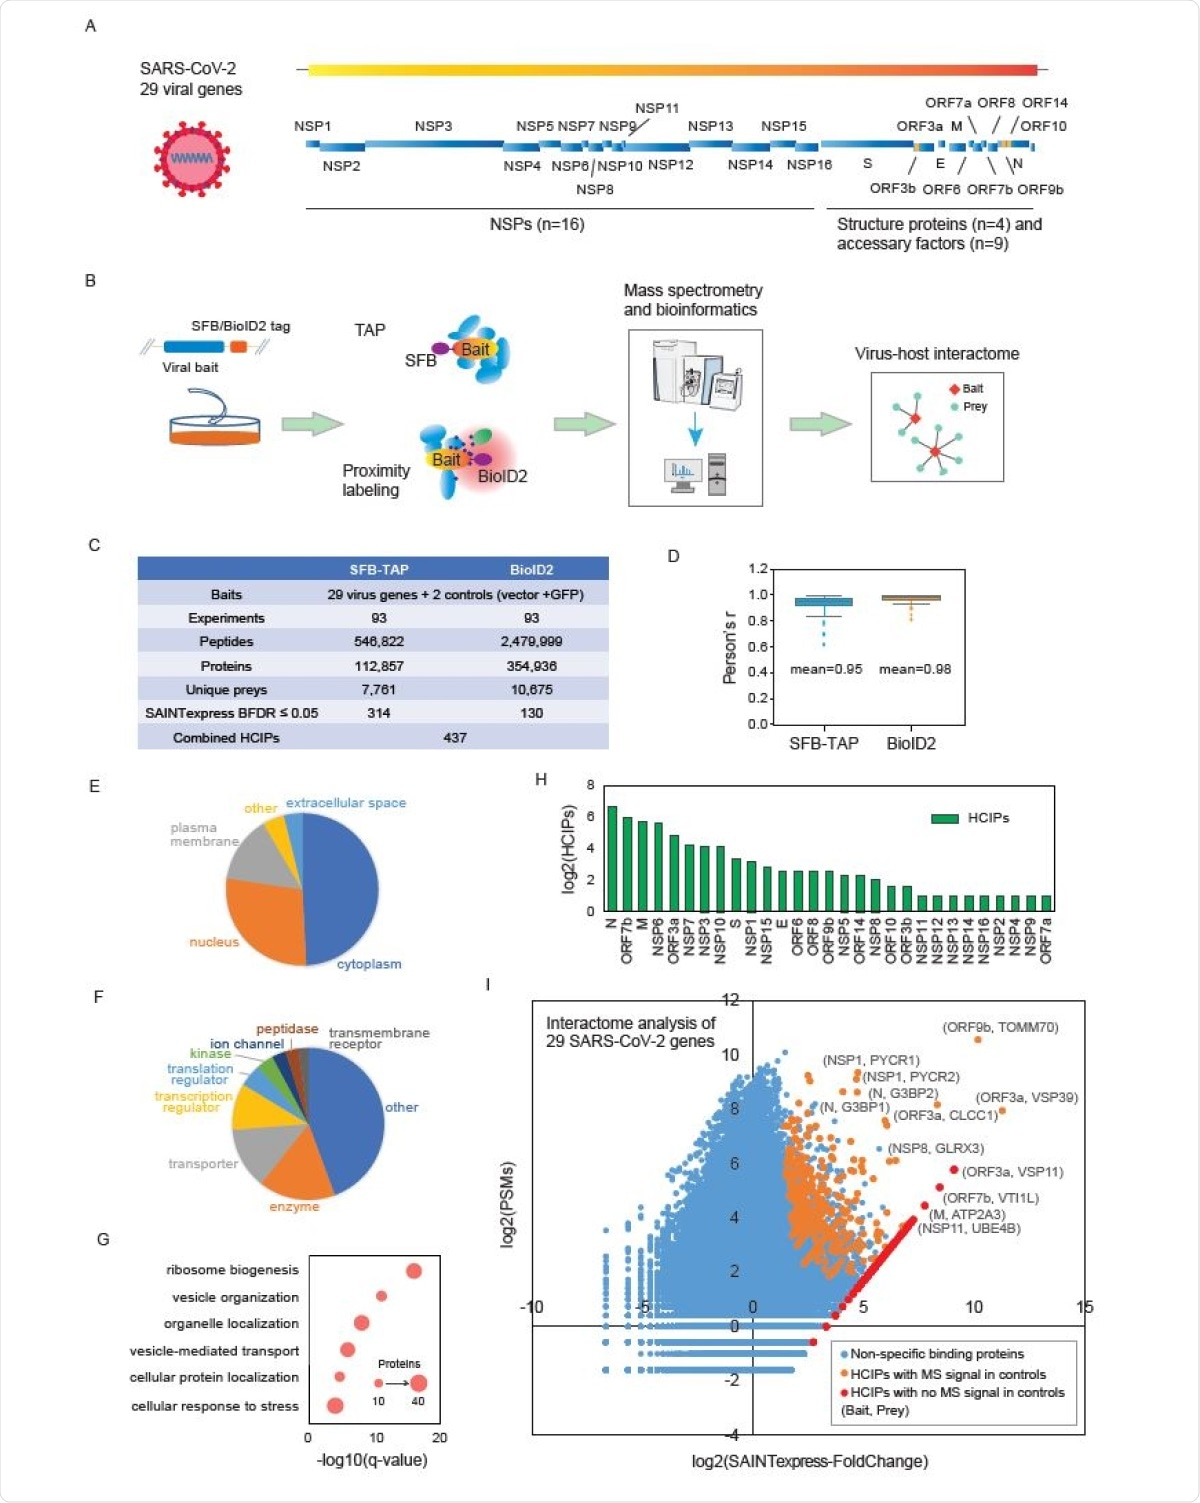 Summary of the SFB-TAP and BioID2 interactome experiments. (A) SARS-CoV-2 genome annotation, predicting 29 virus gene products. The 16 non-structure proteins (NSPs) are cleaved products of the large polyprotein open reading frame (ORF)1ab or ORF1a. These polyproteins are cleaved into small function fragments or NSPs after translation. (B) Workflow for the comprehensive virus-host interactome analysis. Two different labeling strategies, SFBTAP and BioID2 labeling, were applied in the study. Samples were analyzed by Q Exactive HF mass spectrometry (MS). (C) Summary of the datasets obtained from SFB-TAP and BioID2 results, including the number of high-confidence interacting proteins (HCIPs). BDFR, Bayesian false discovery rate. (D) Pearson correlation coefficient among three independent biological replicates of the SFB-TAP results and the BioID2 labeling experiments. (E-G) GO analysis. GO enrichment was performed using Ingenuity Pathway Analysis. Protein localization (E), molecular function (F), and biological function (G) are plotted in a single panel. (H) HCIPs identified in the purification of each SARS-CoV-2 gene. (I) Correlation between peptide-spectrum matches (PSMs) of identified proteins and their fold change calculated by SAINTexpress.